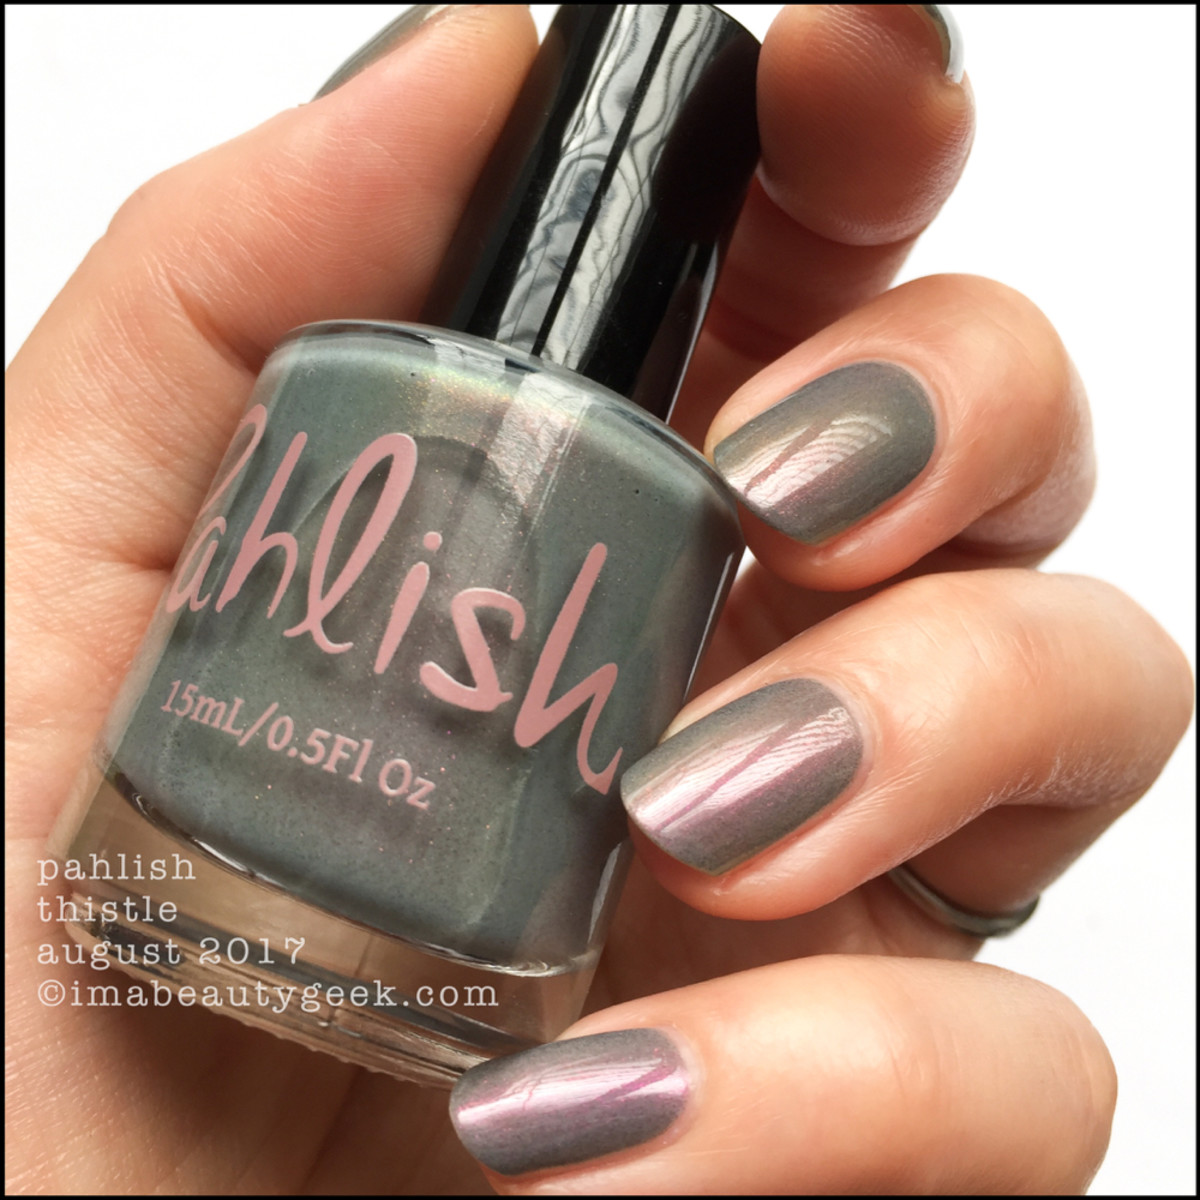 Pahlish Thistle Swatches w top coat _ Pahlish August 2017 Swatches Review